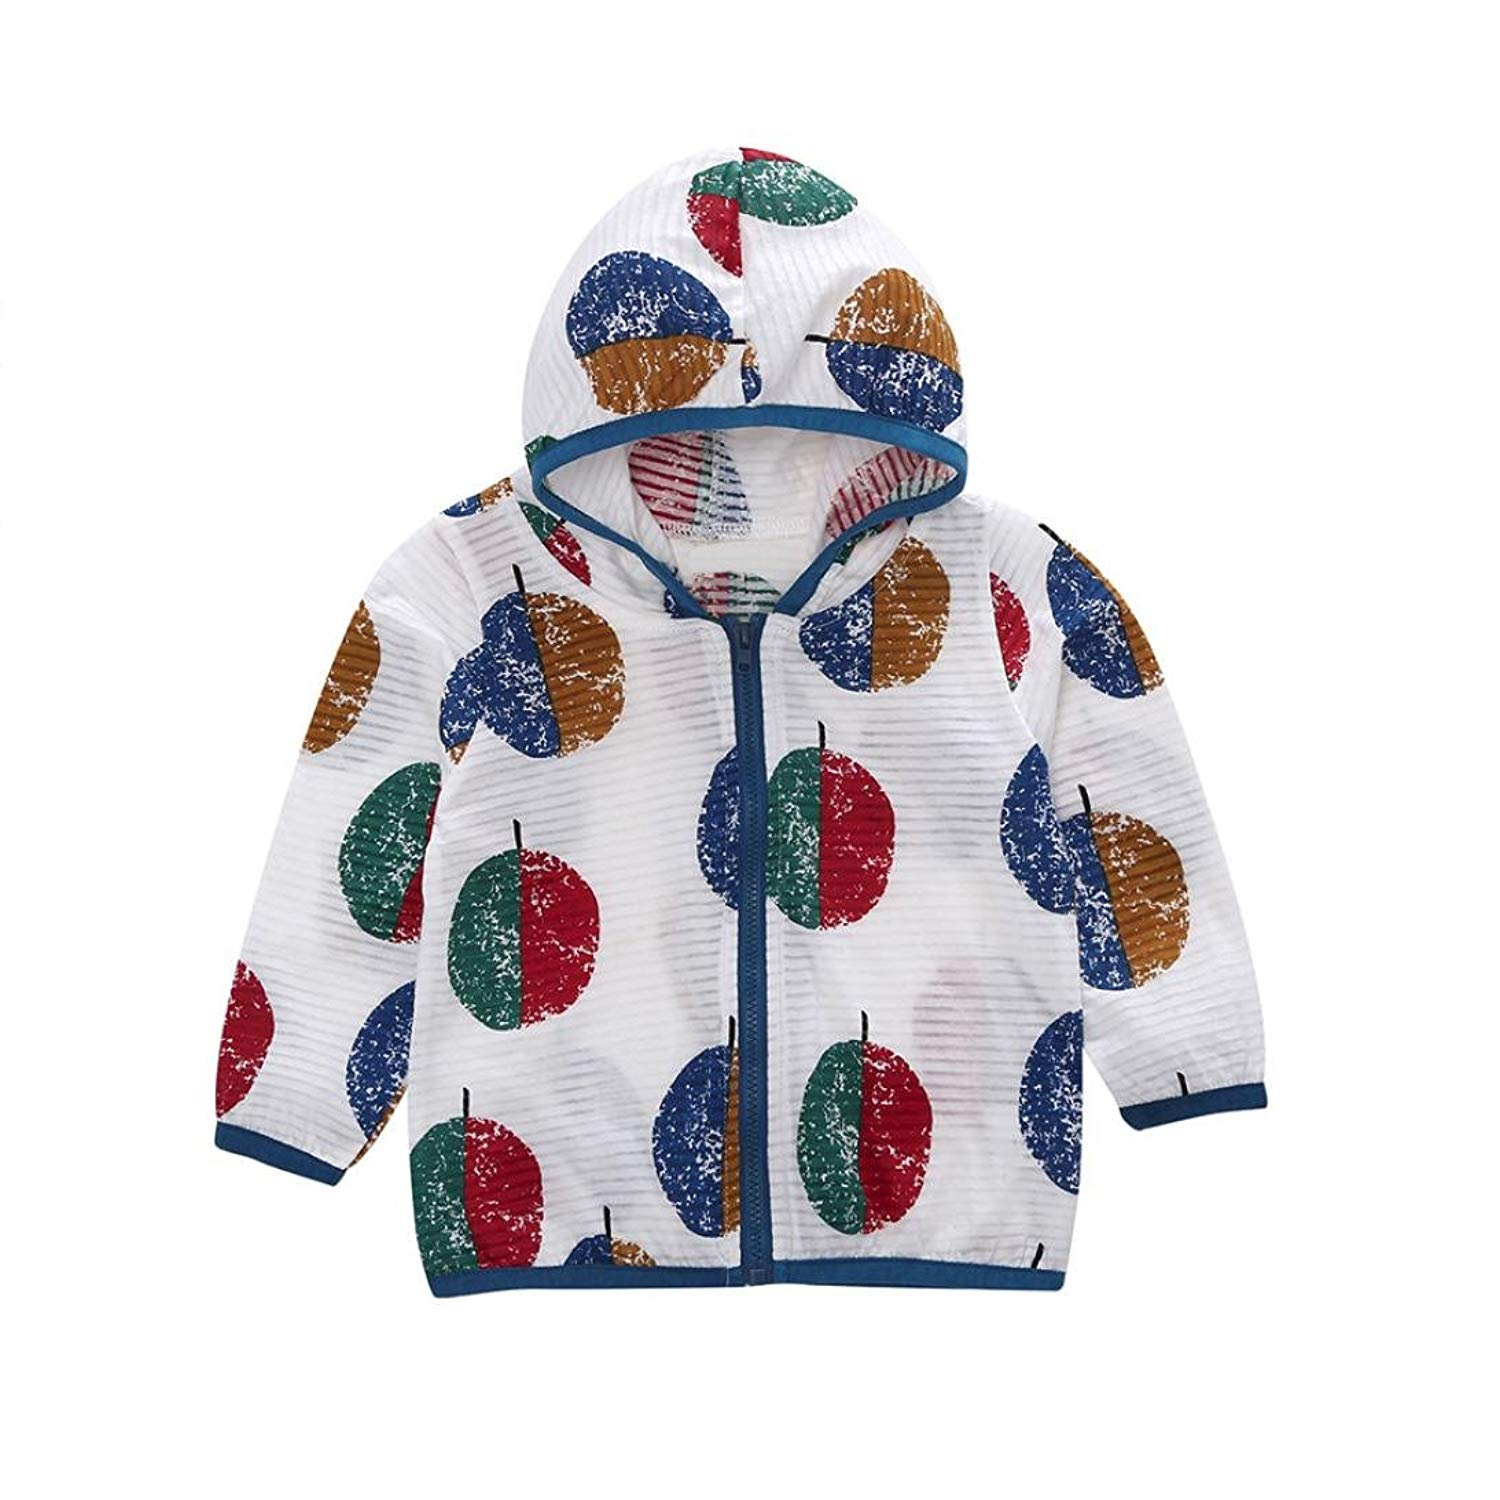 69114ec9c69 Get Quotations · Boomboom Baby Summer Coat Fashion Cute Unisex Boys Girls  Autumn Summer Clothes Coat Sunscreen Jacket